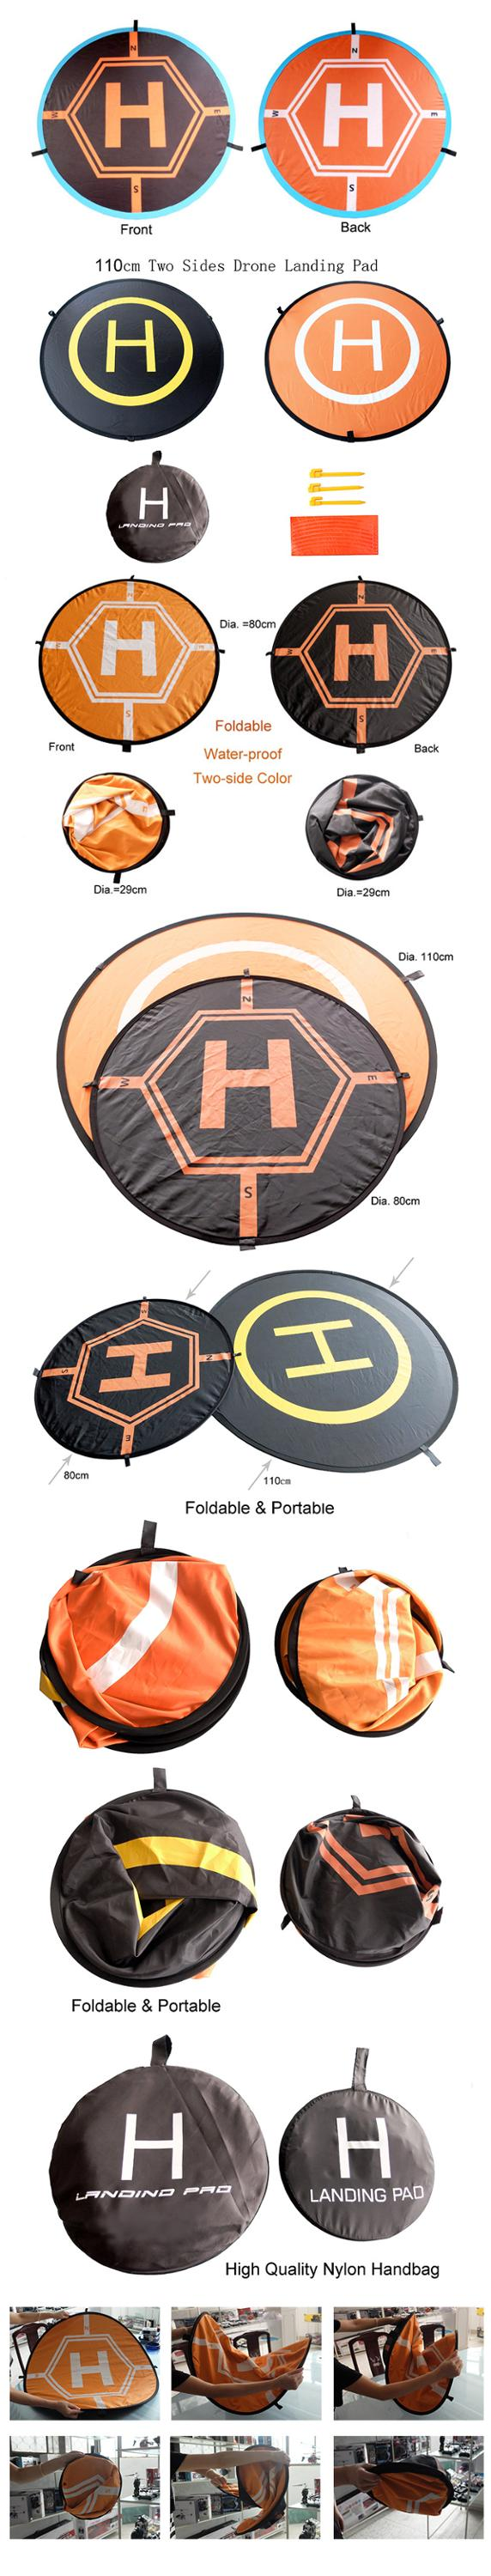 Folding Outdoor Waterproof Foldable Positioning Return Landing Base Pad with Reflective Strips